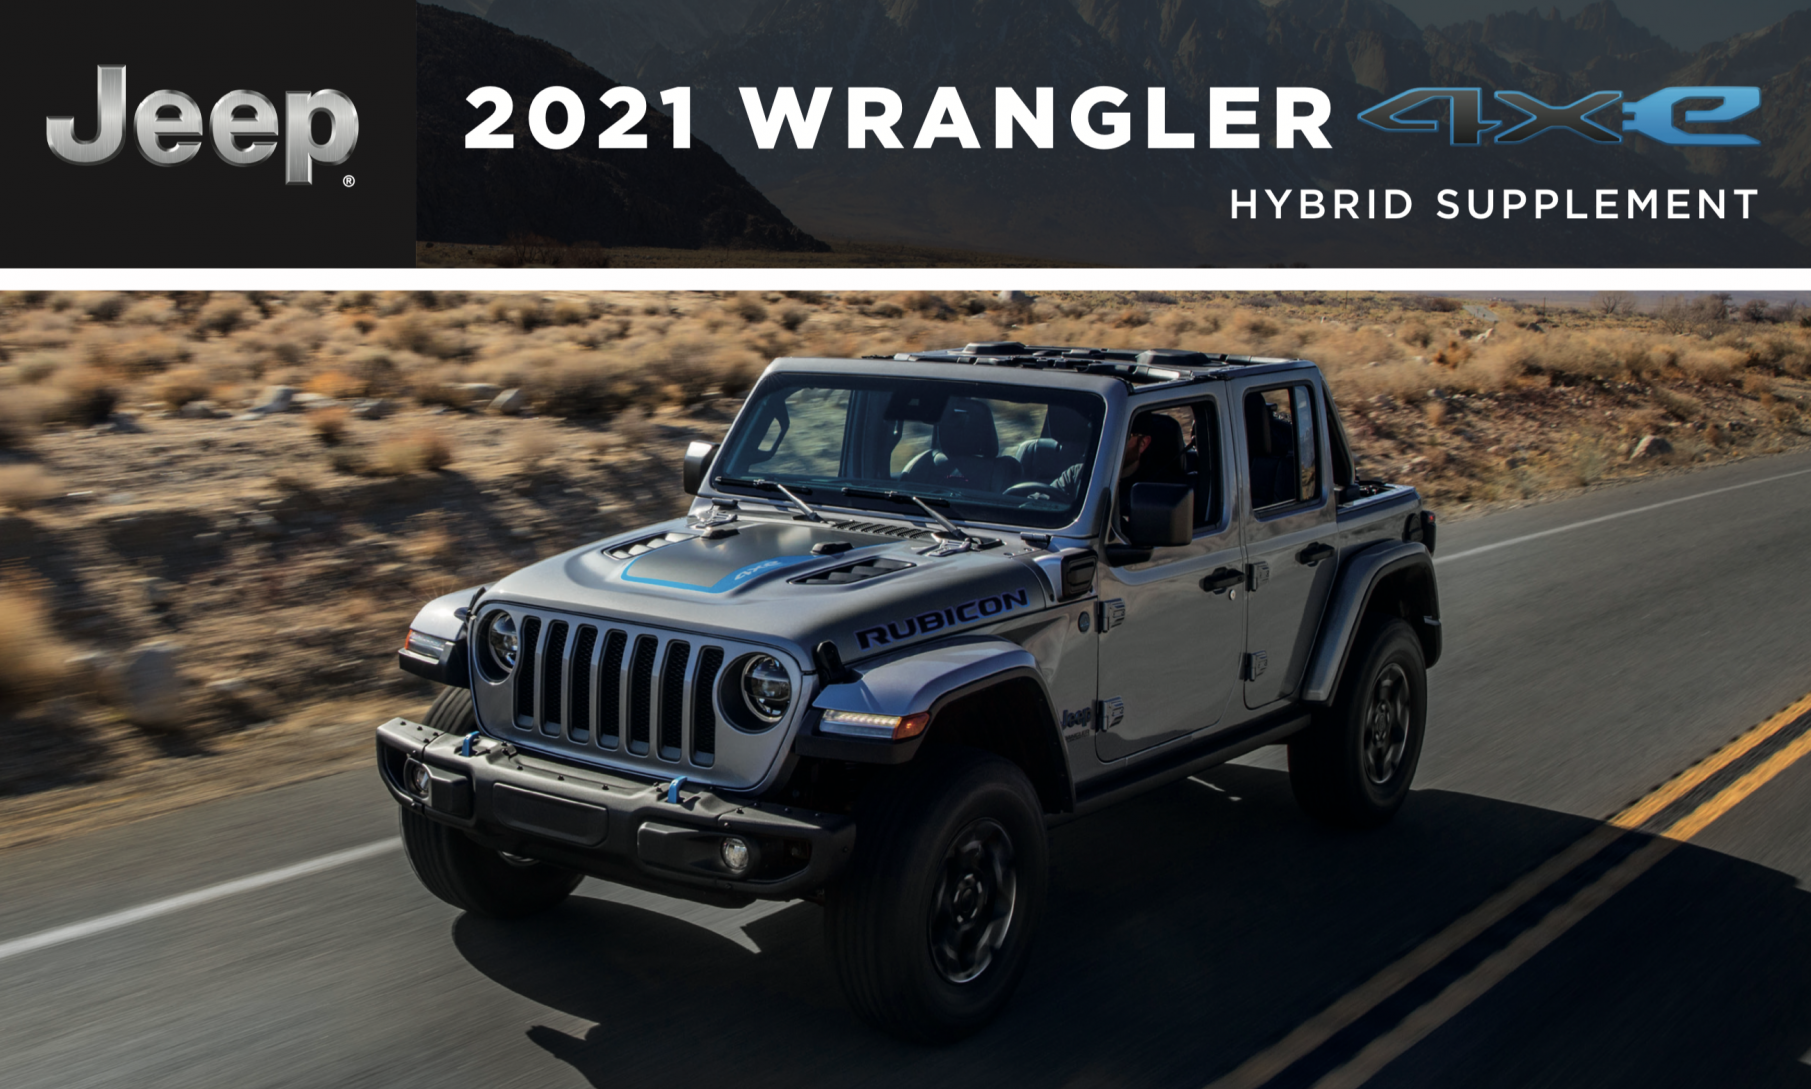 2021 Jeep Wrangler 4xe Hybrid Supplement.png